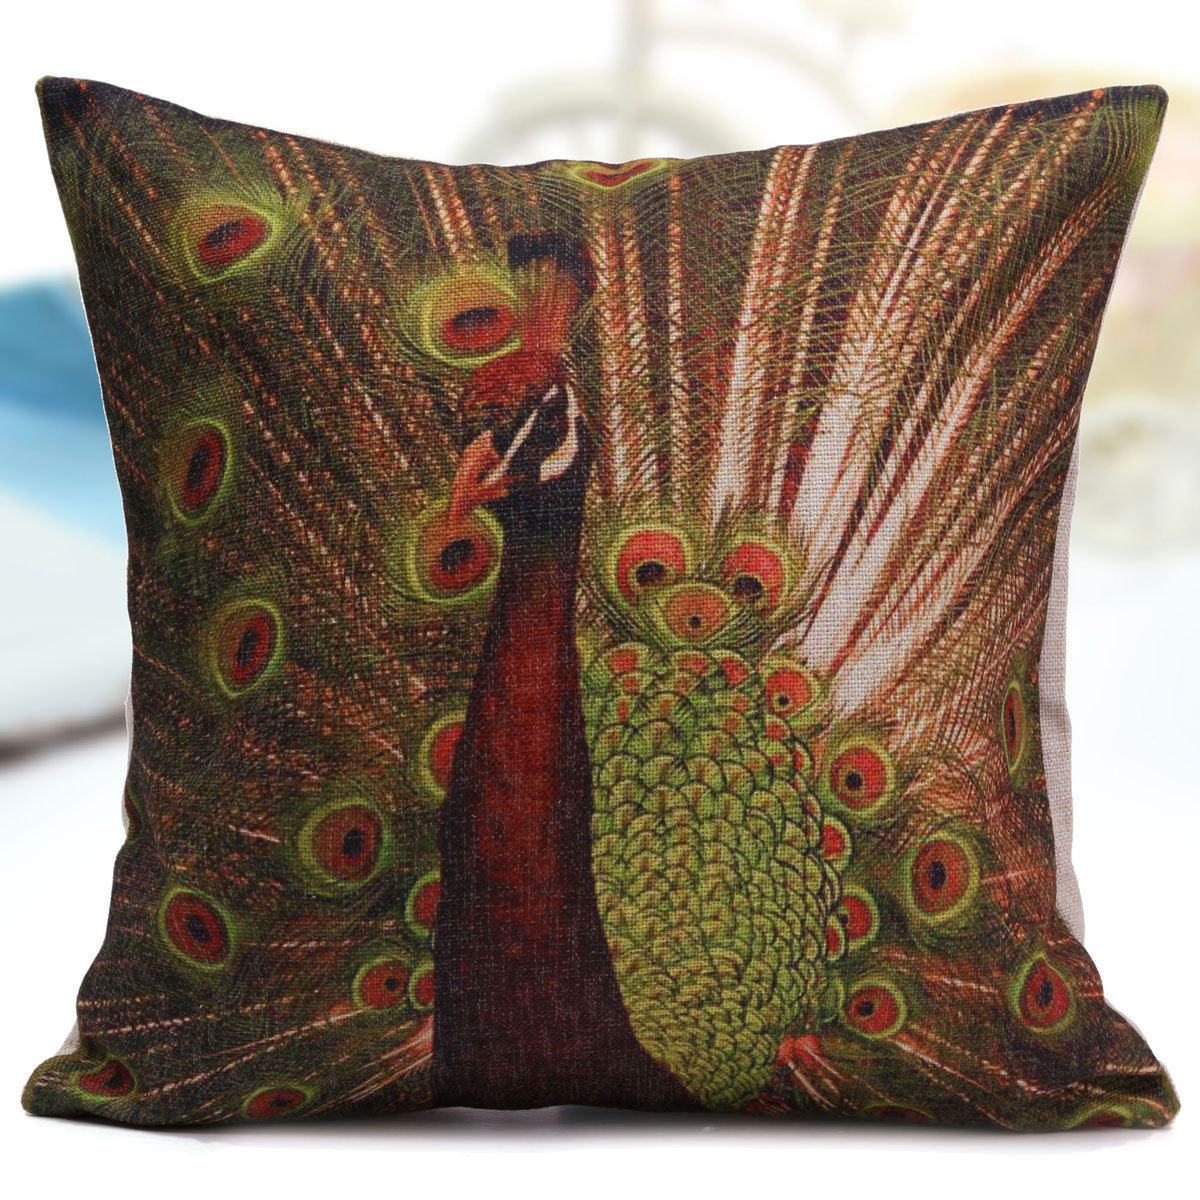 Decorative Linen Pillows : Cartoon Owl Cotton Linen Throw Pillow Case Cushion Cover Home Sofa Decorative eBay